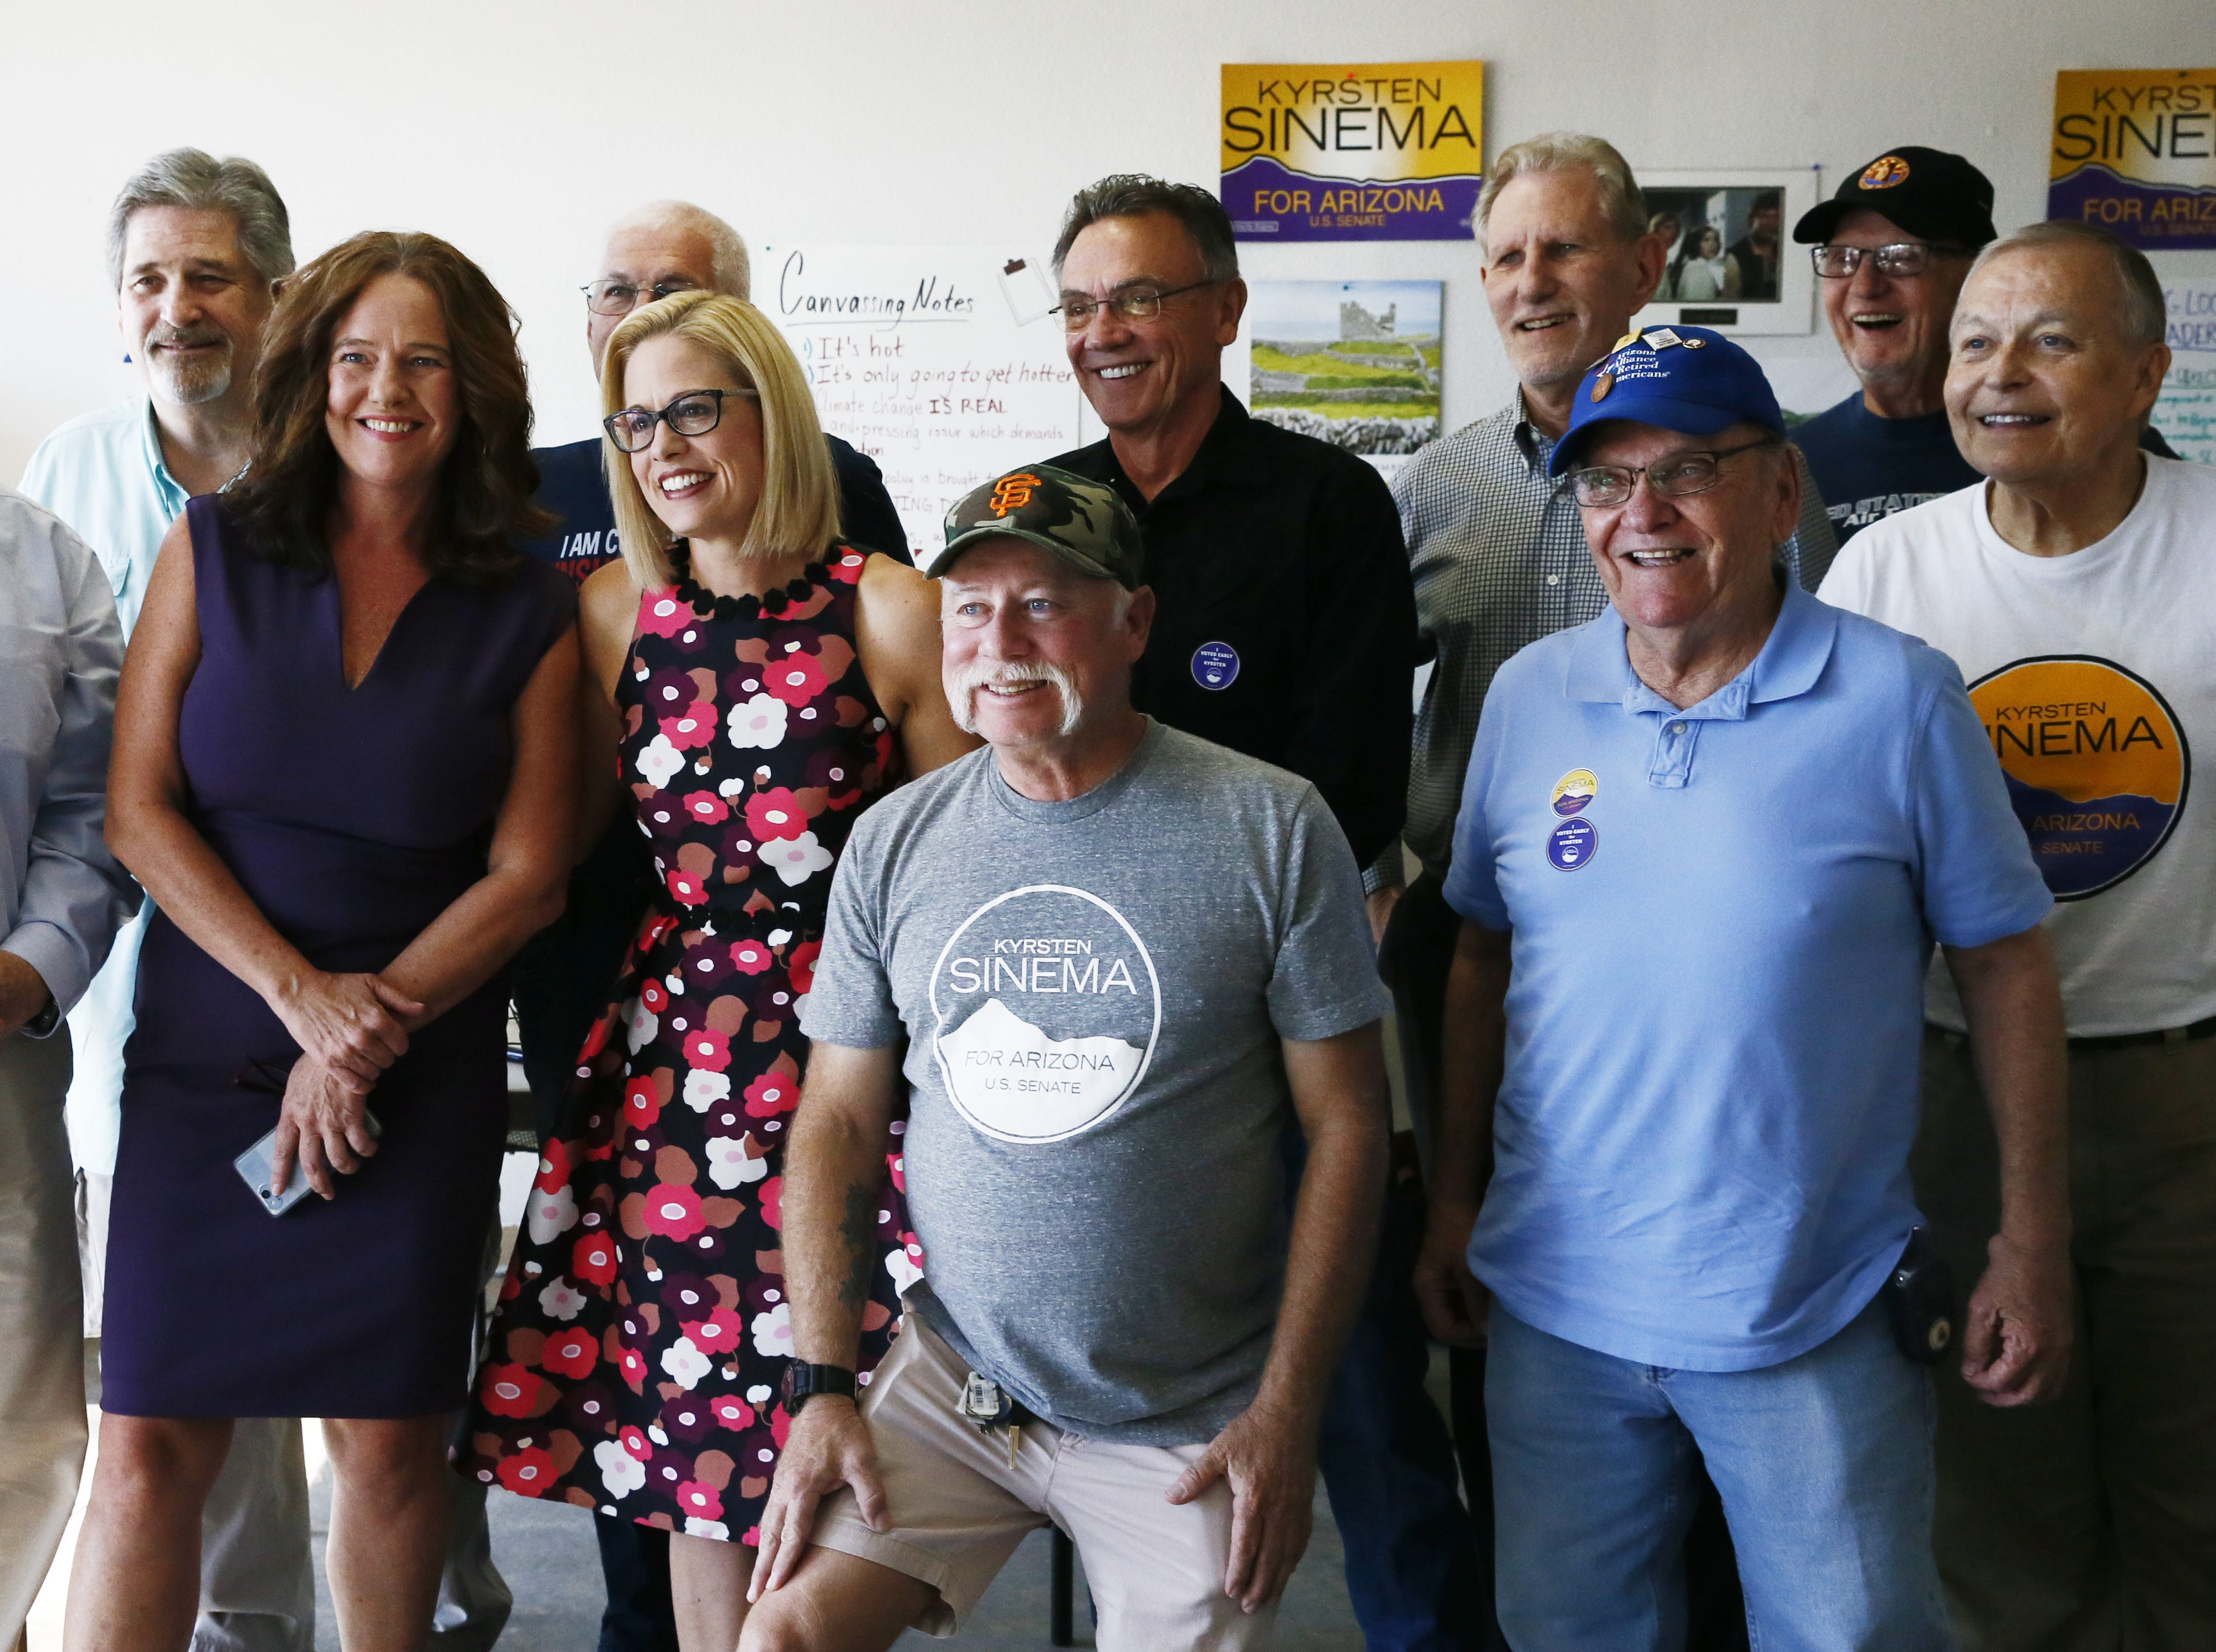 Kyrsten Sinema, the Democratic candidate for the U.S. Senate poses for a photograph at a get-out-the-vote event with members of the Veterans for Sinema coalition and volunteers on Nov. 1 in Phoenix.